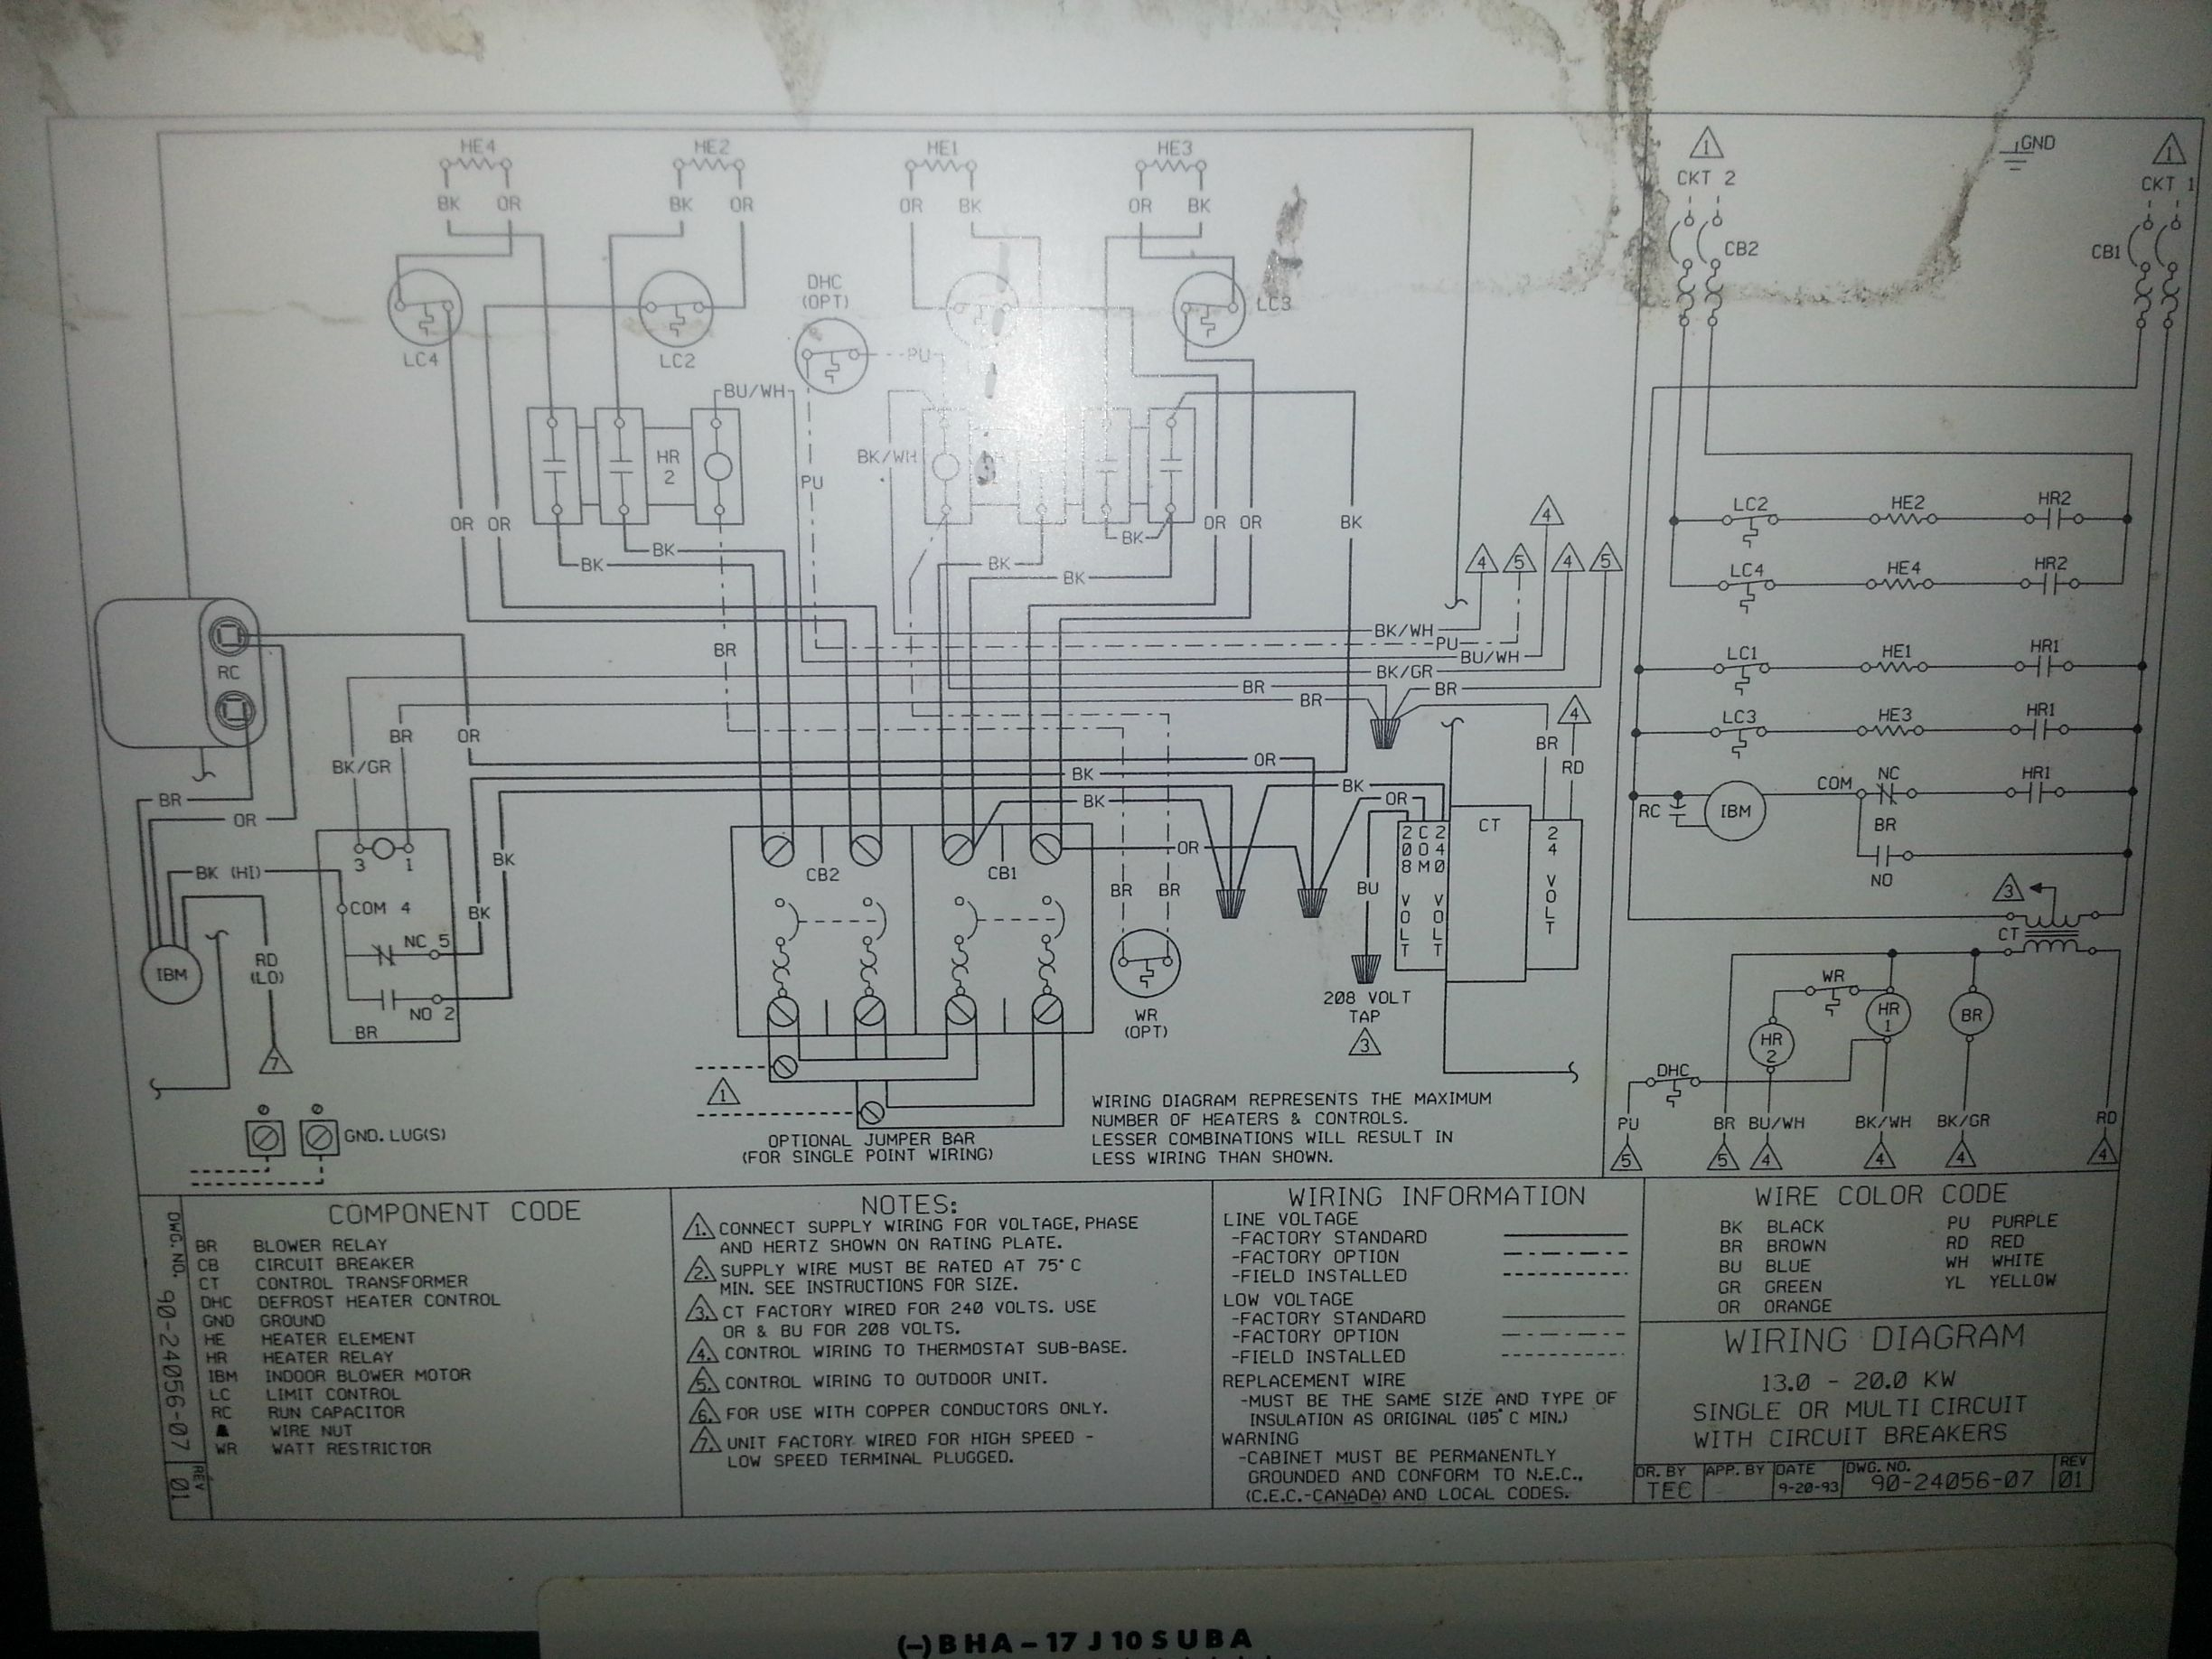 Rheem Hot Water Heater Wiring Diagram | Wiring Diagram - Rheem Rte 13 Wiring Diagram